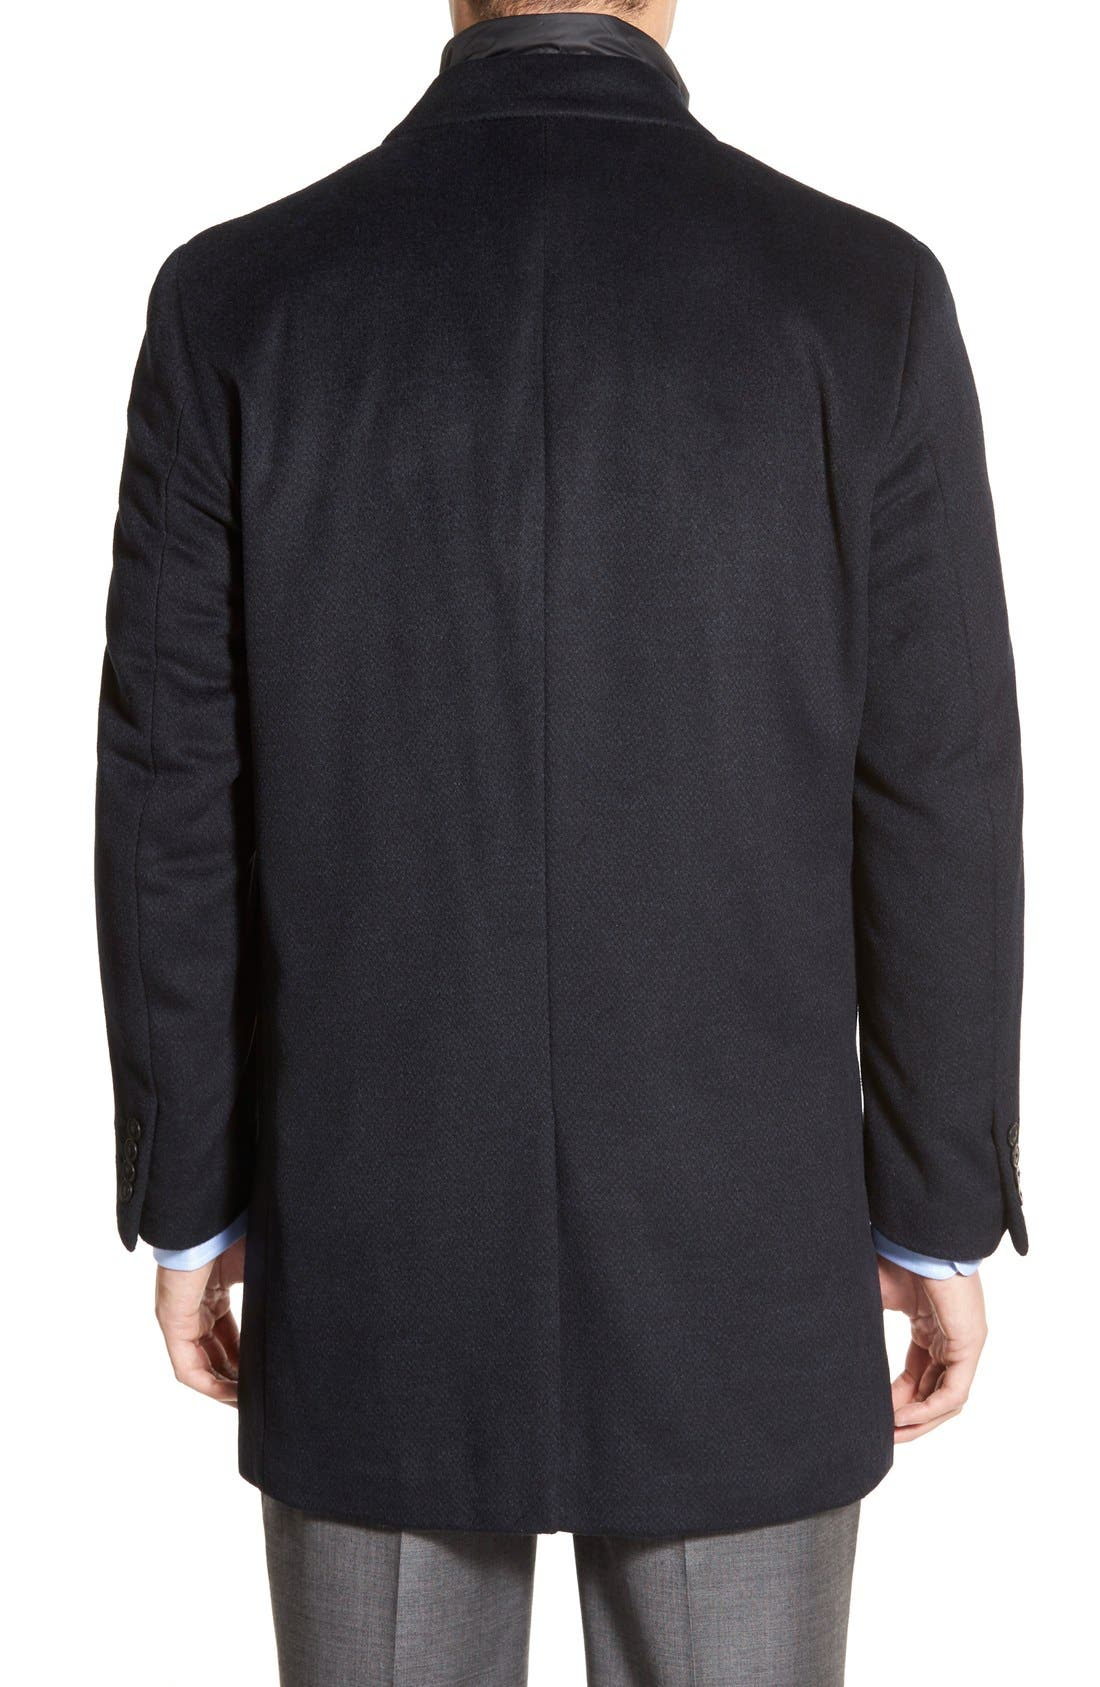 Alternate Image 2  - Hart Schaffner Marx Kingman Modern Fit Wool Blend Coat with Removable Zipper Bib